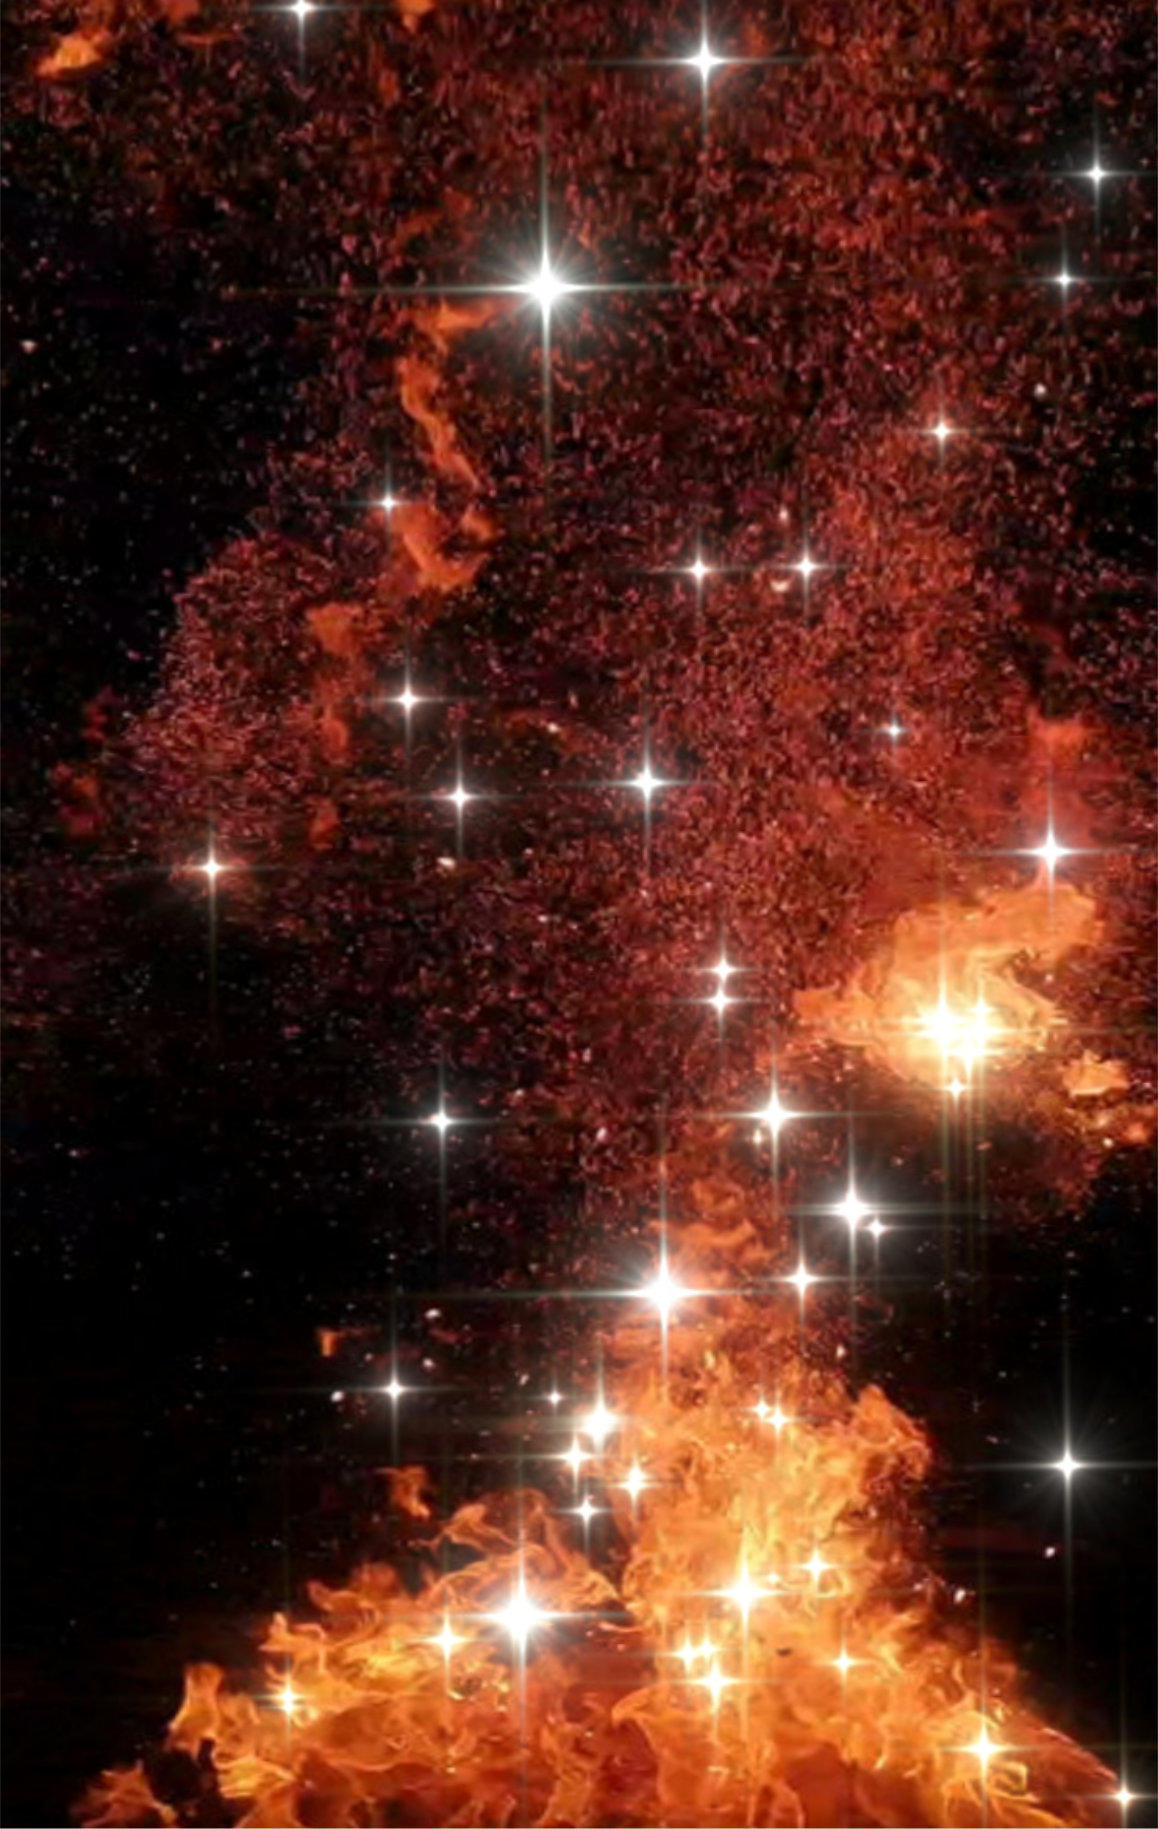 Fire giving birth to stars